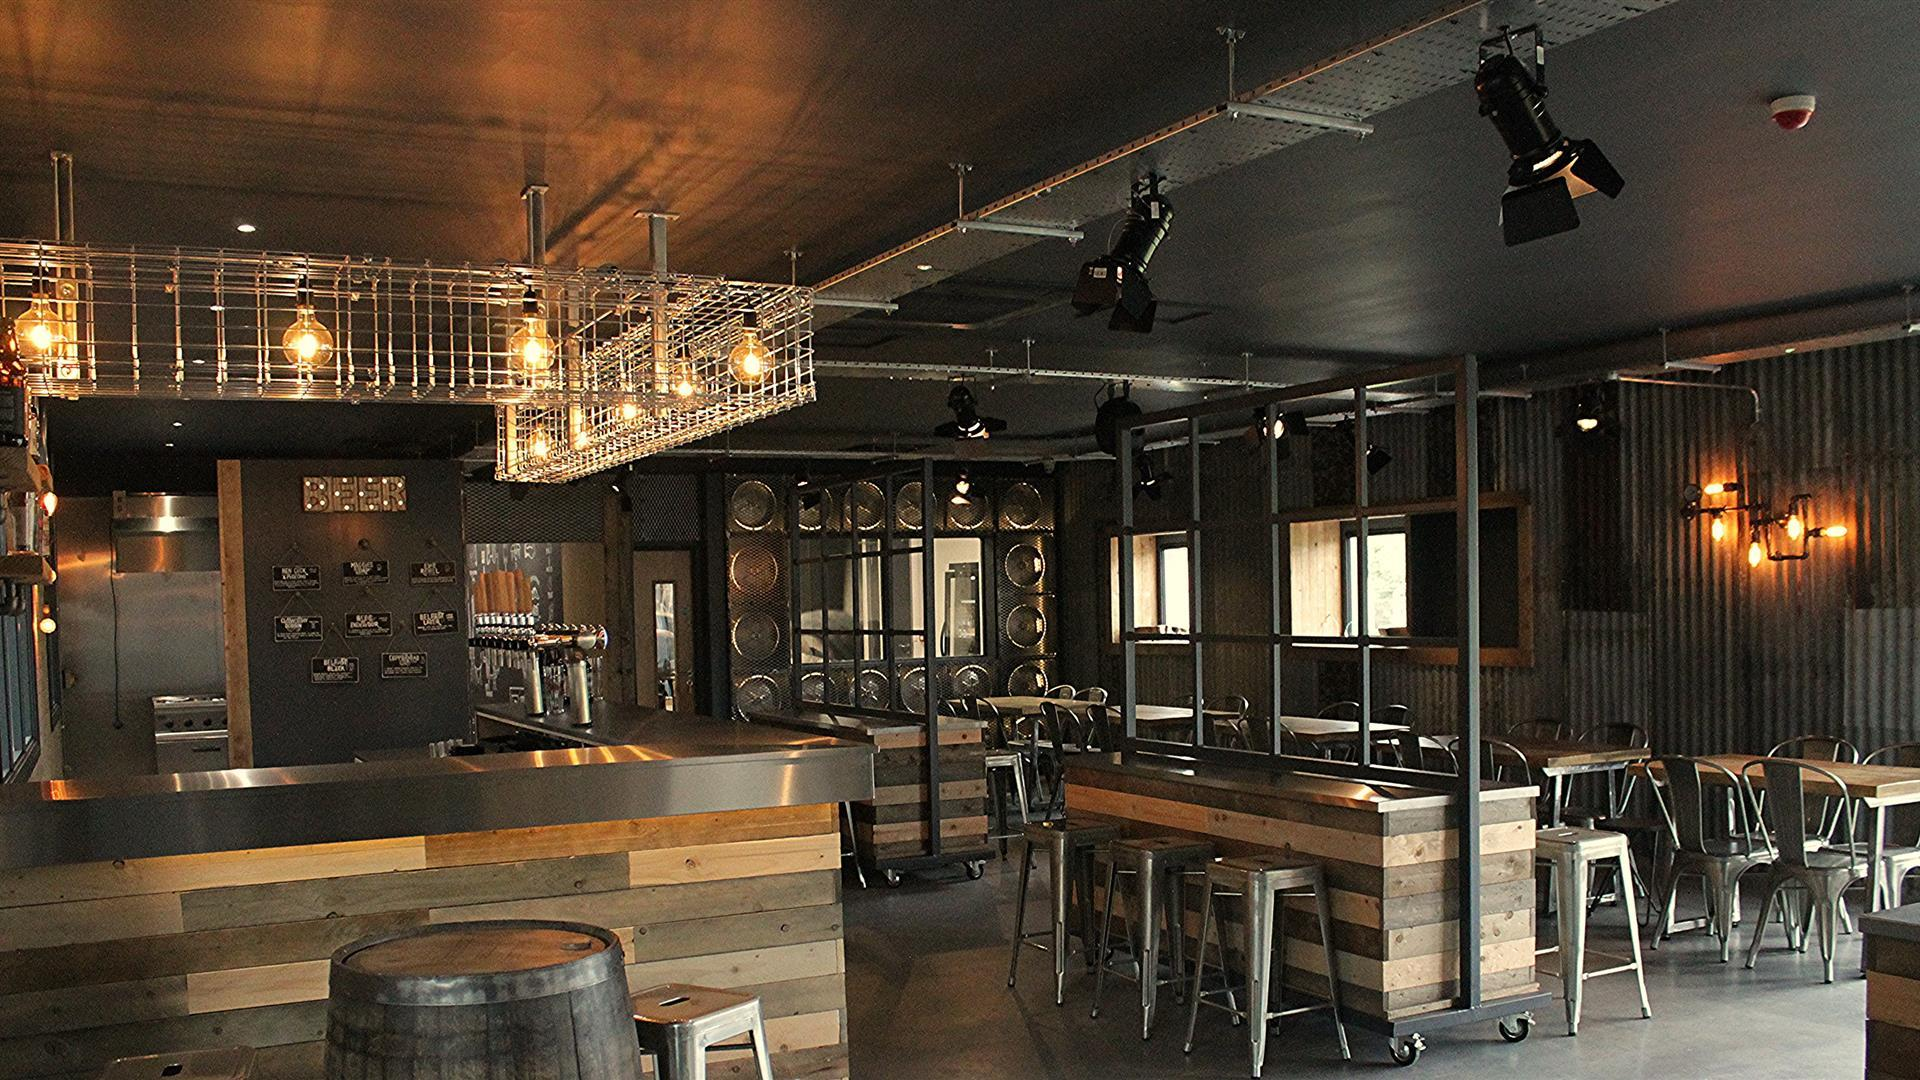 Whitewater Brewery Tours and Tap Room